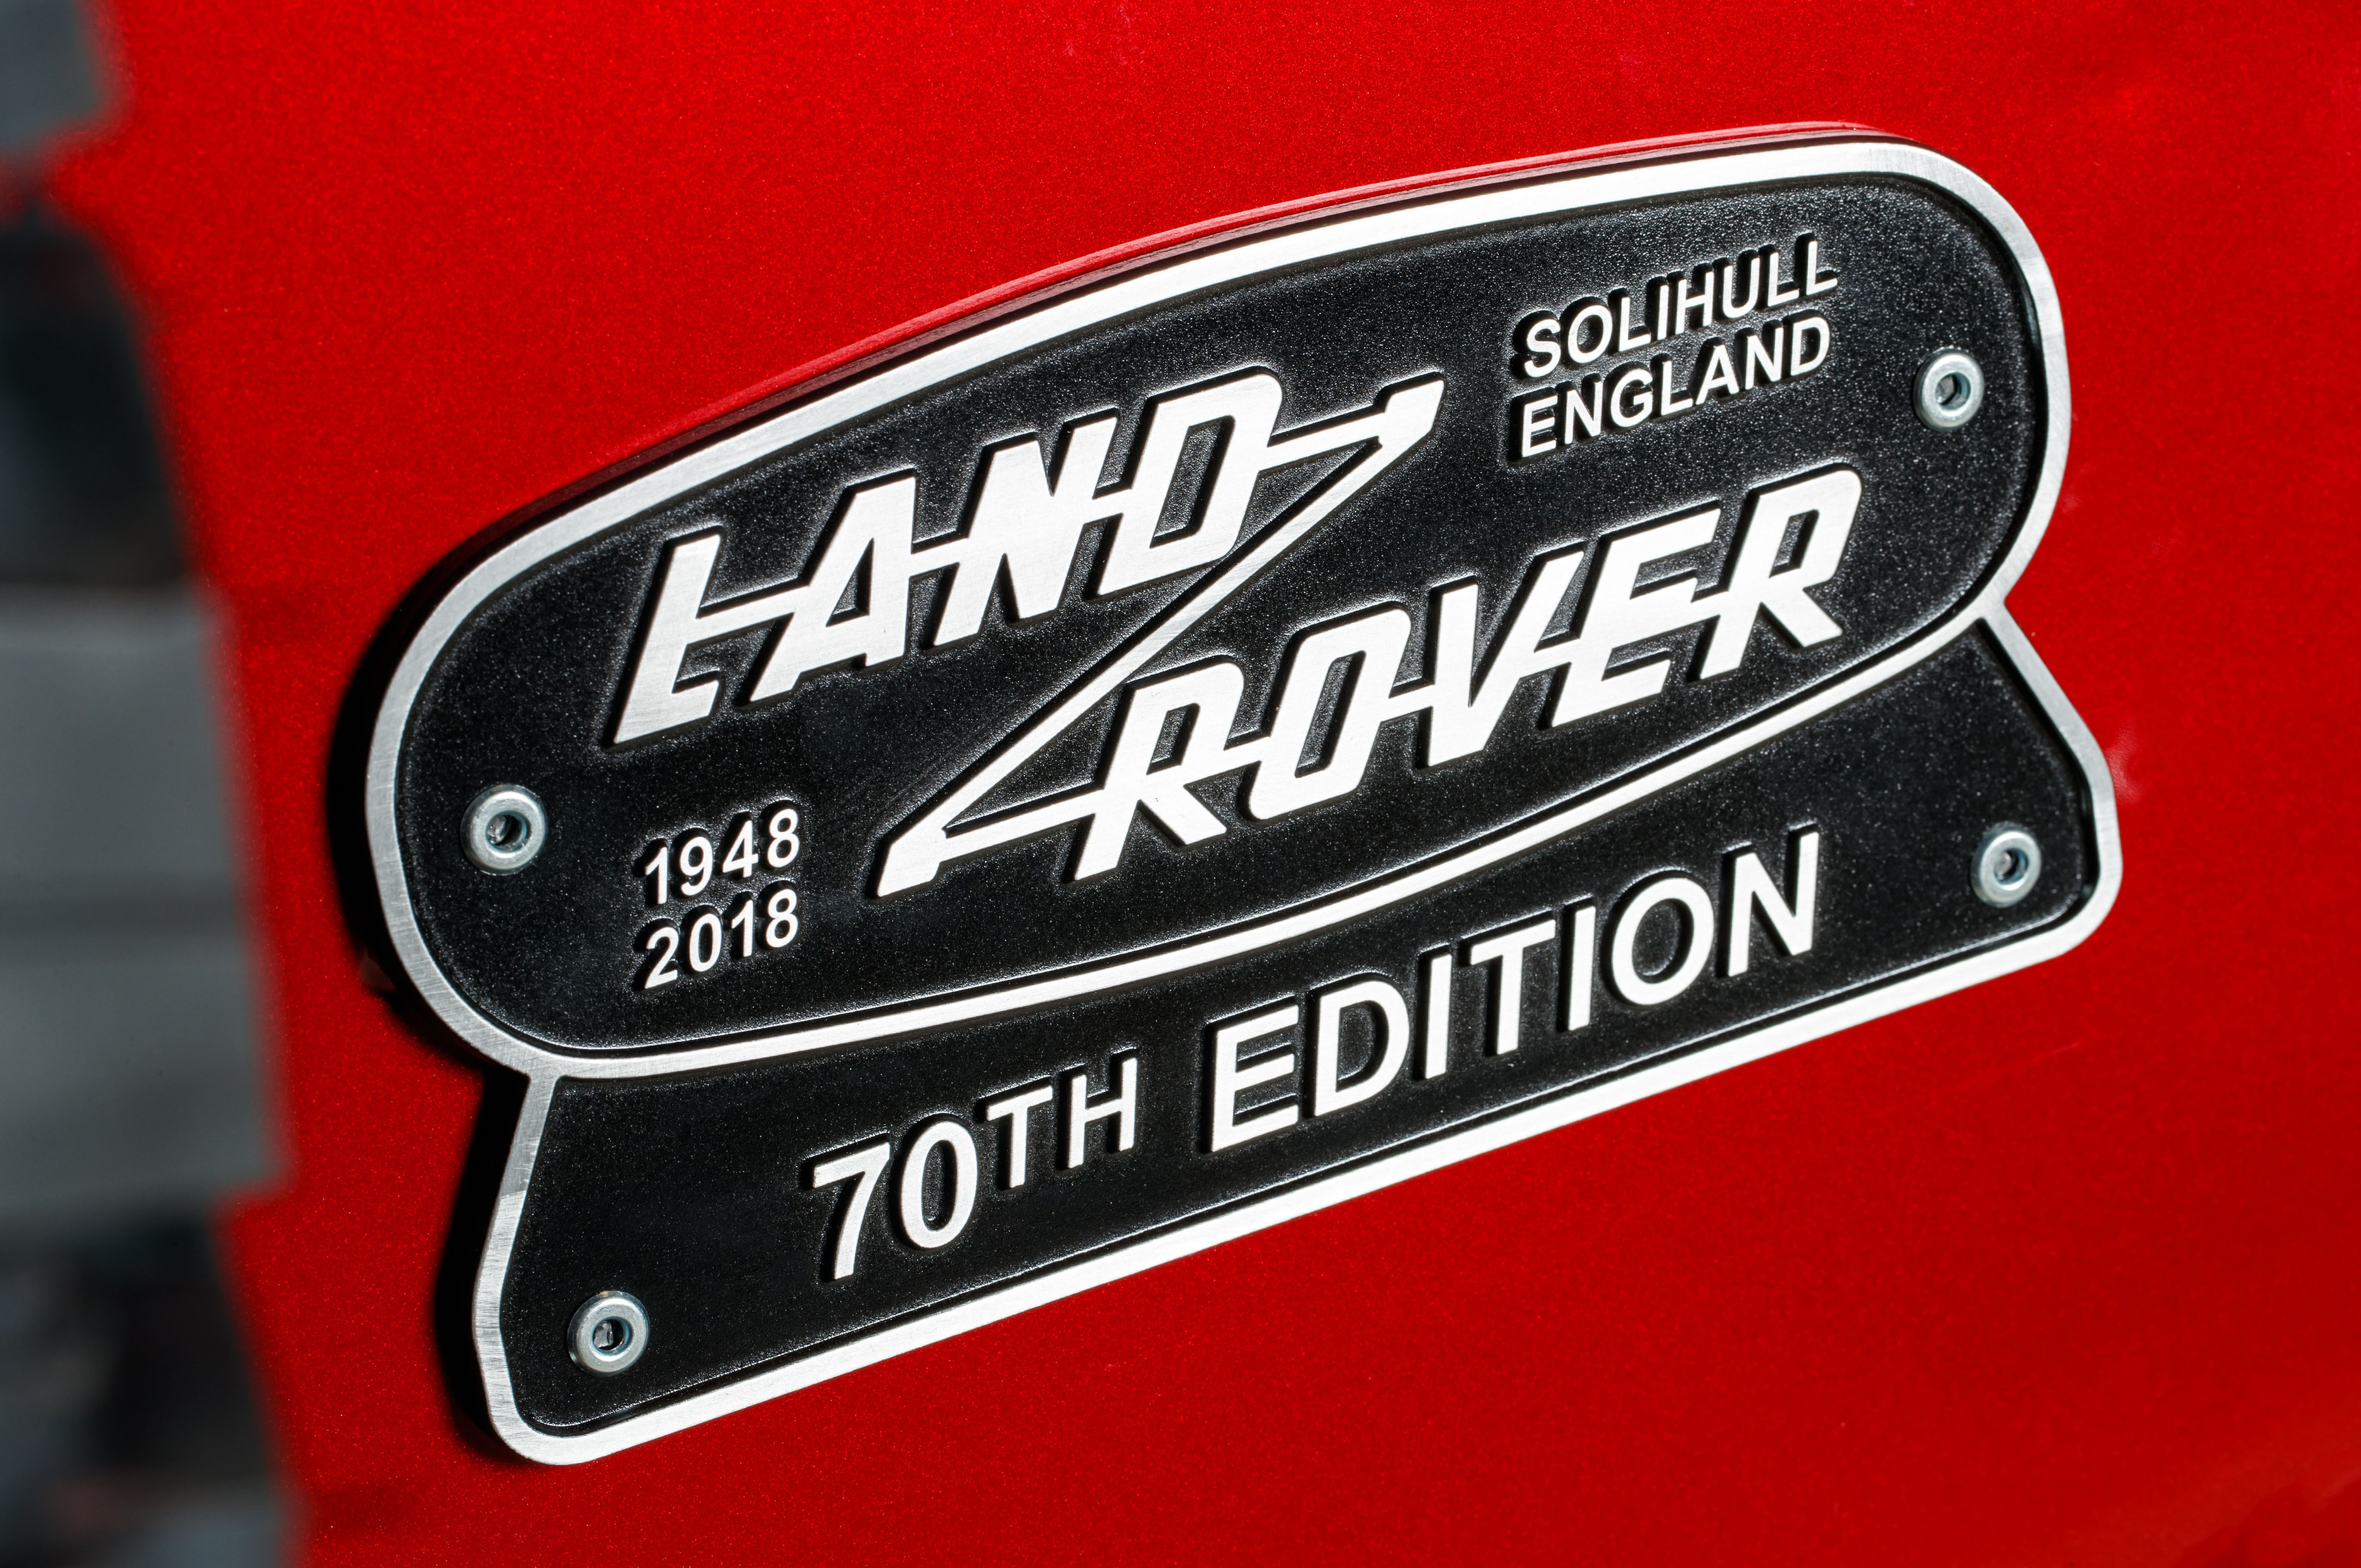 https://st.automobilemag.com/uploads/sites/5/2018/01/Land-Rover-Defender-Works-V8-badge-.jpg